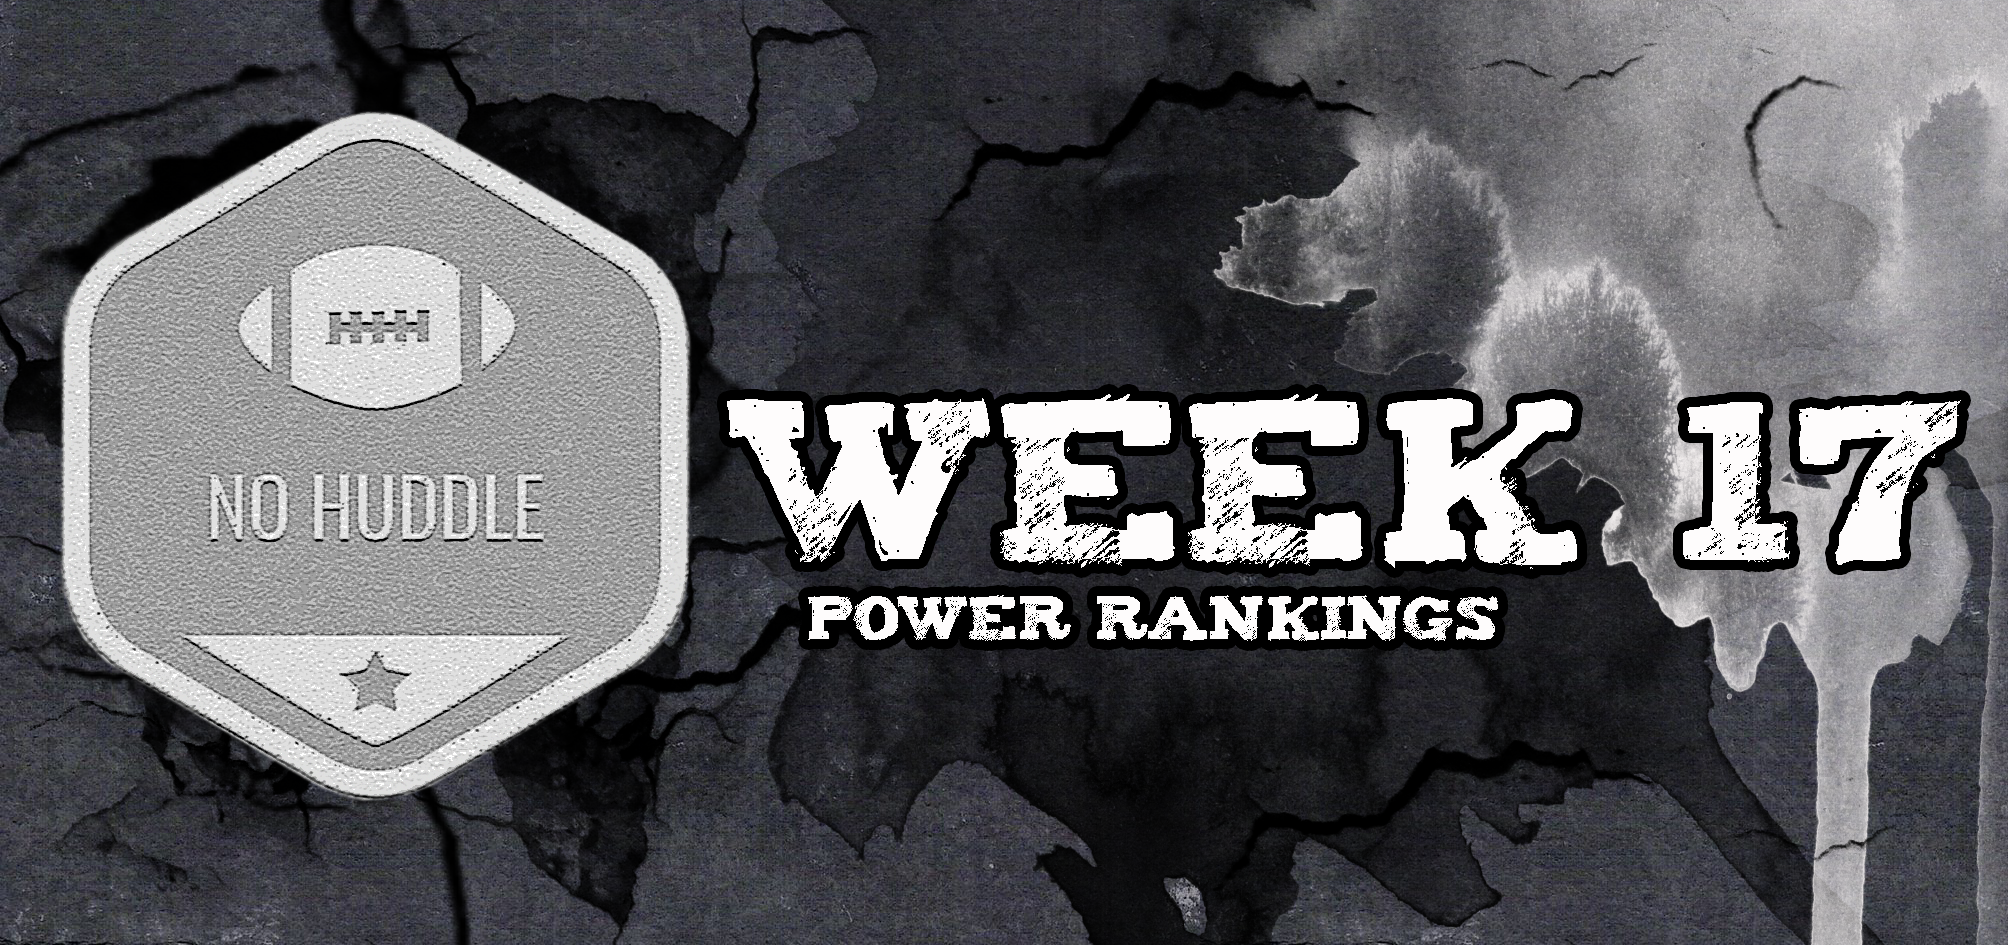 Power Rankings: Semana 17